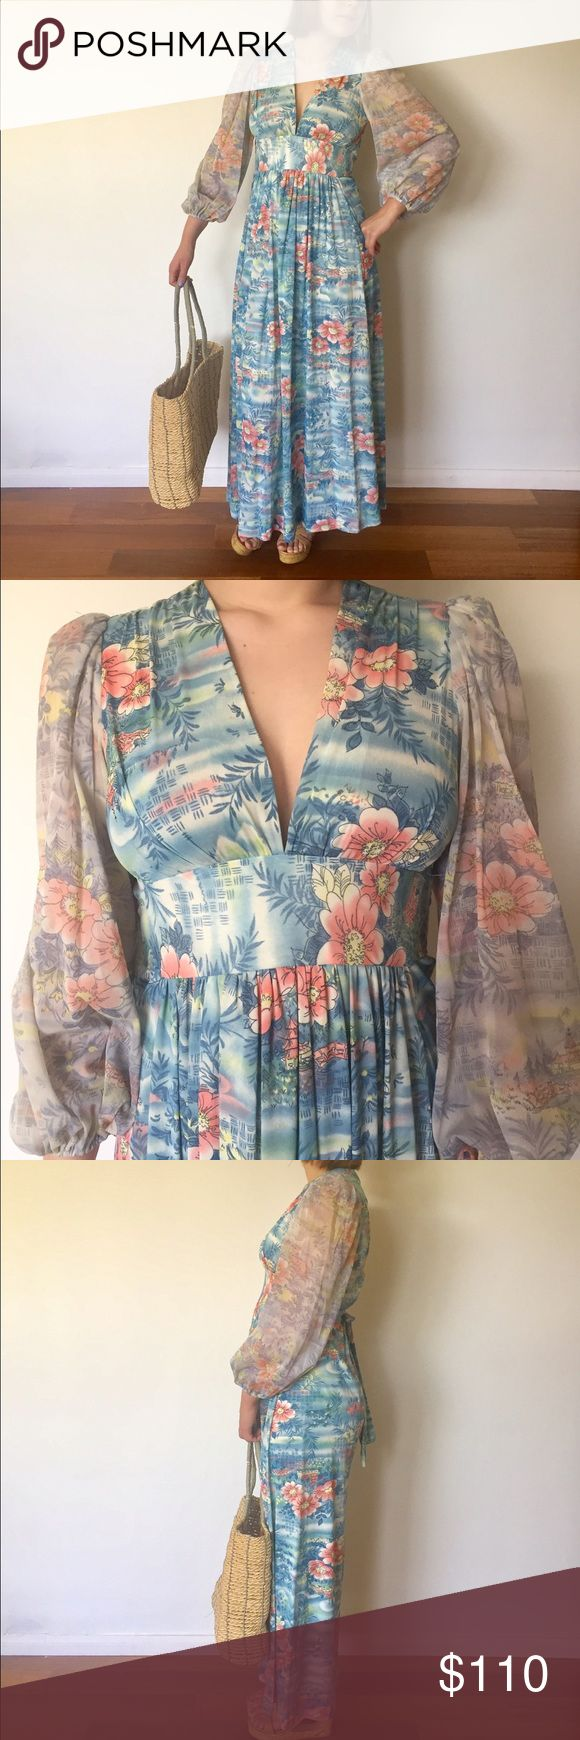 "60s 70s Maxi Dress Sheer V Neck Asian Print S M 70s Empire waist dress with sheer bell sleeves. The neckline has a deep V design, it has a cinching tie at the waist, the sleeves have elastic ends.  It goes on over the head with no zipper.    Material: Polyester Color/print: blue with peach and yellow Asian print Maker: tag says Union Made Era: 70's  Size:  M  Bust- 34""  Sleeve- 24"" Waist- 30"" with cinching tie Hips- 60"" Length- 54"" 1/2"" of STRETCH ON EACH SIDE Model-5'4"" 34""B 26""W 38""H…"